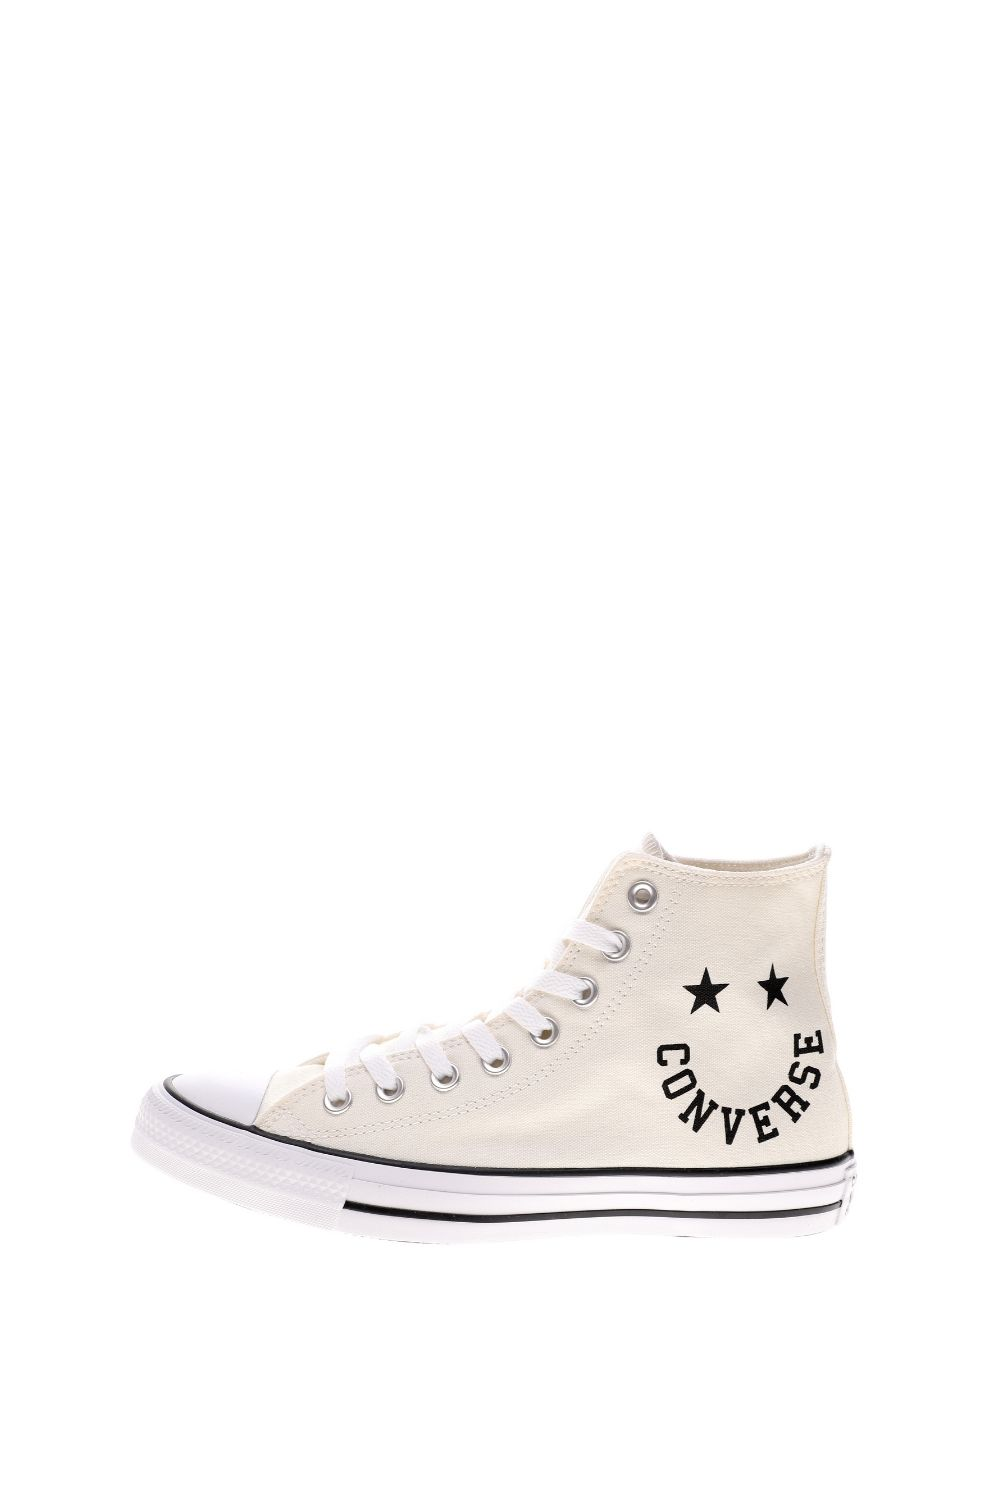 CONVERSE – Unisex ψηλά sneakers CONVERSE CHUCK TAYLOR ALL STAR SMILE λευκά μπλε